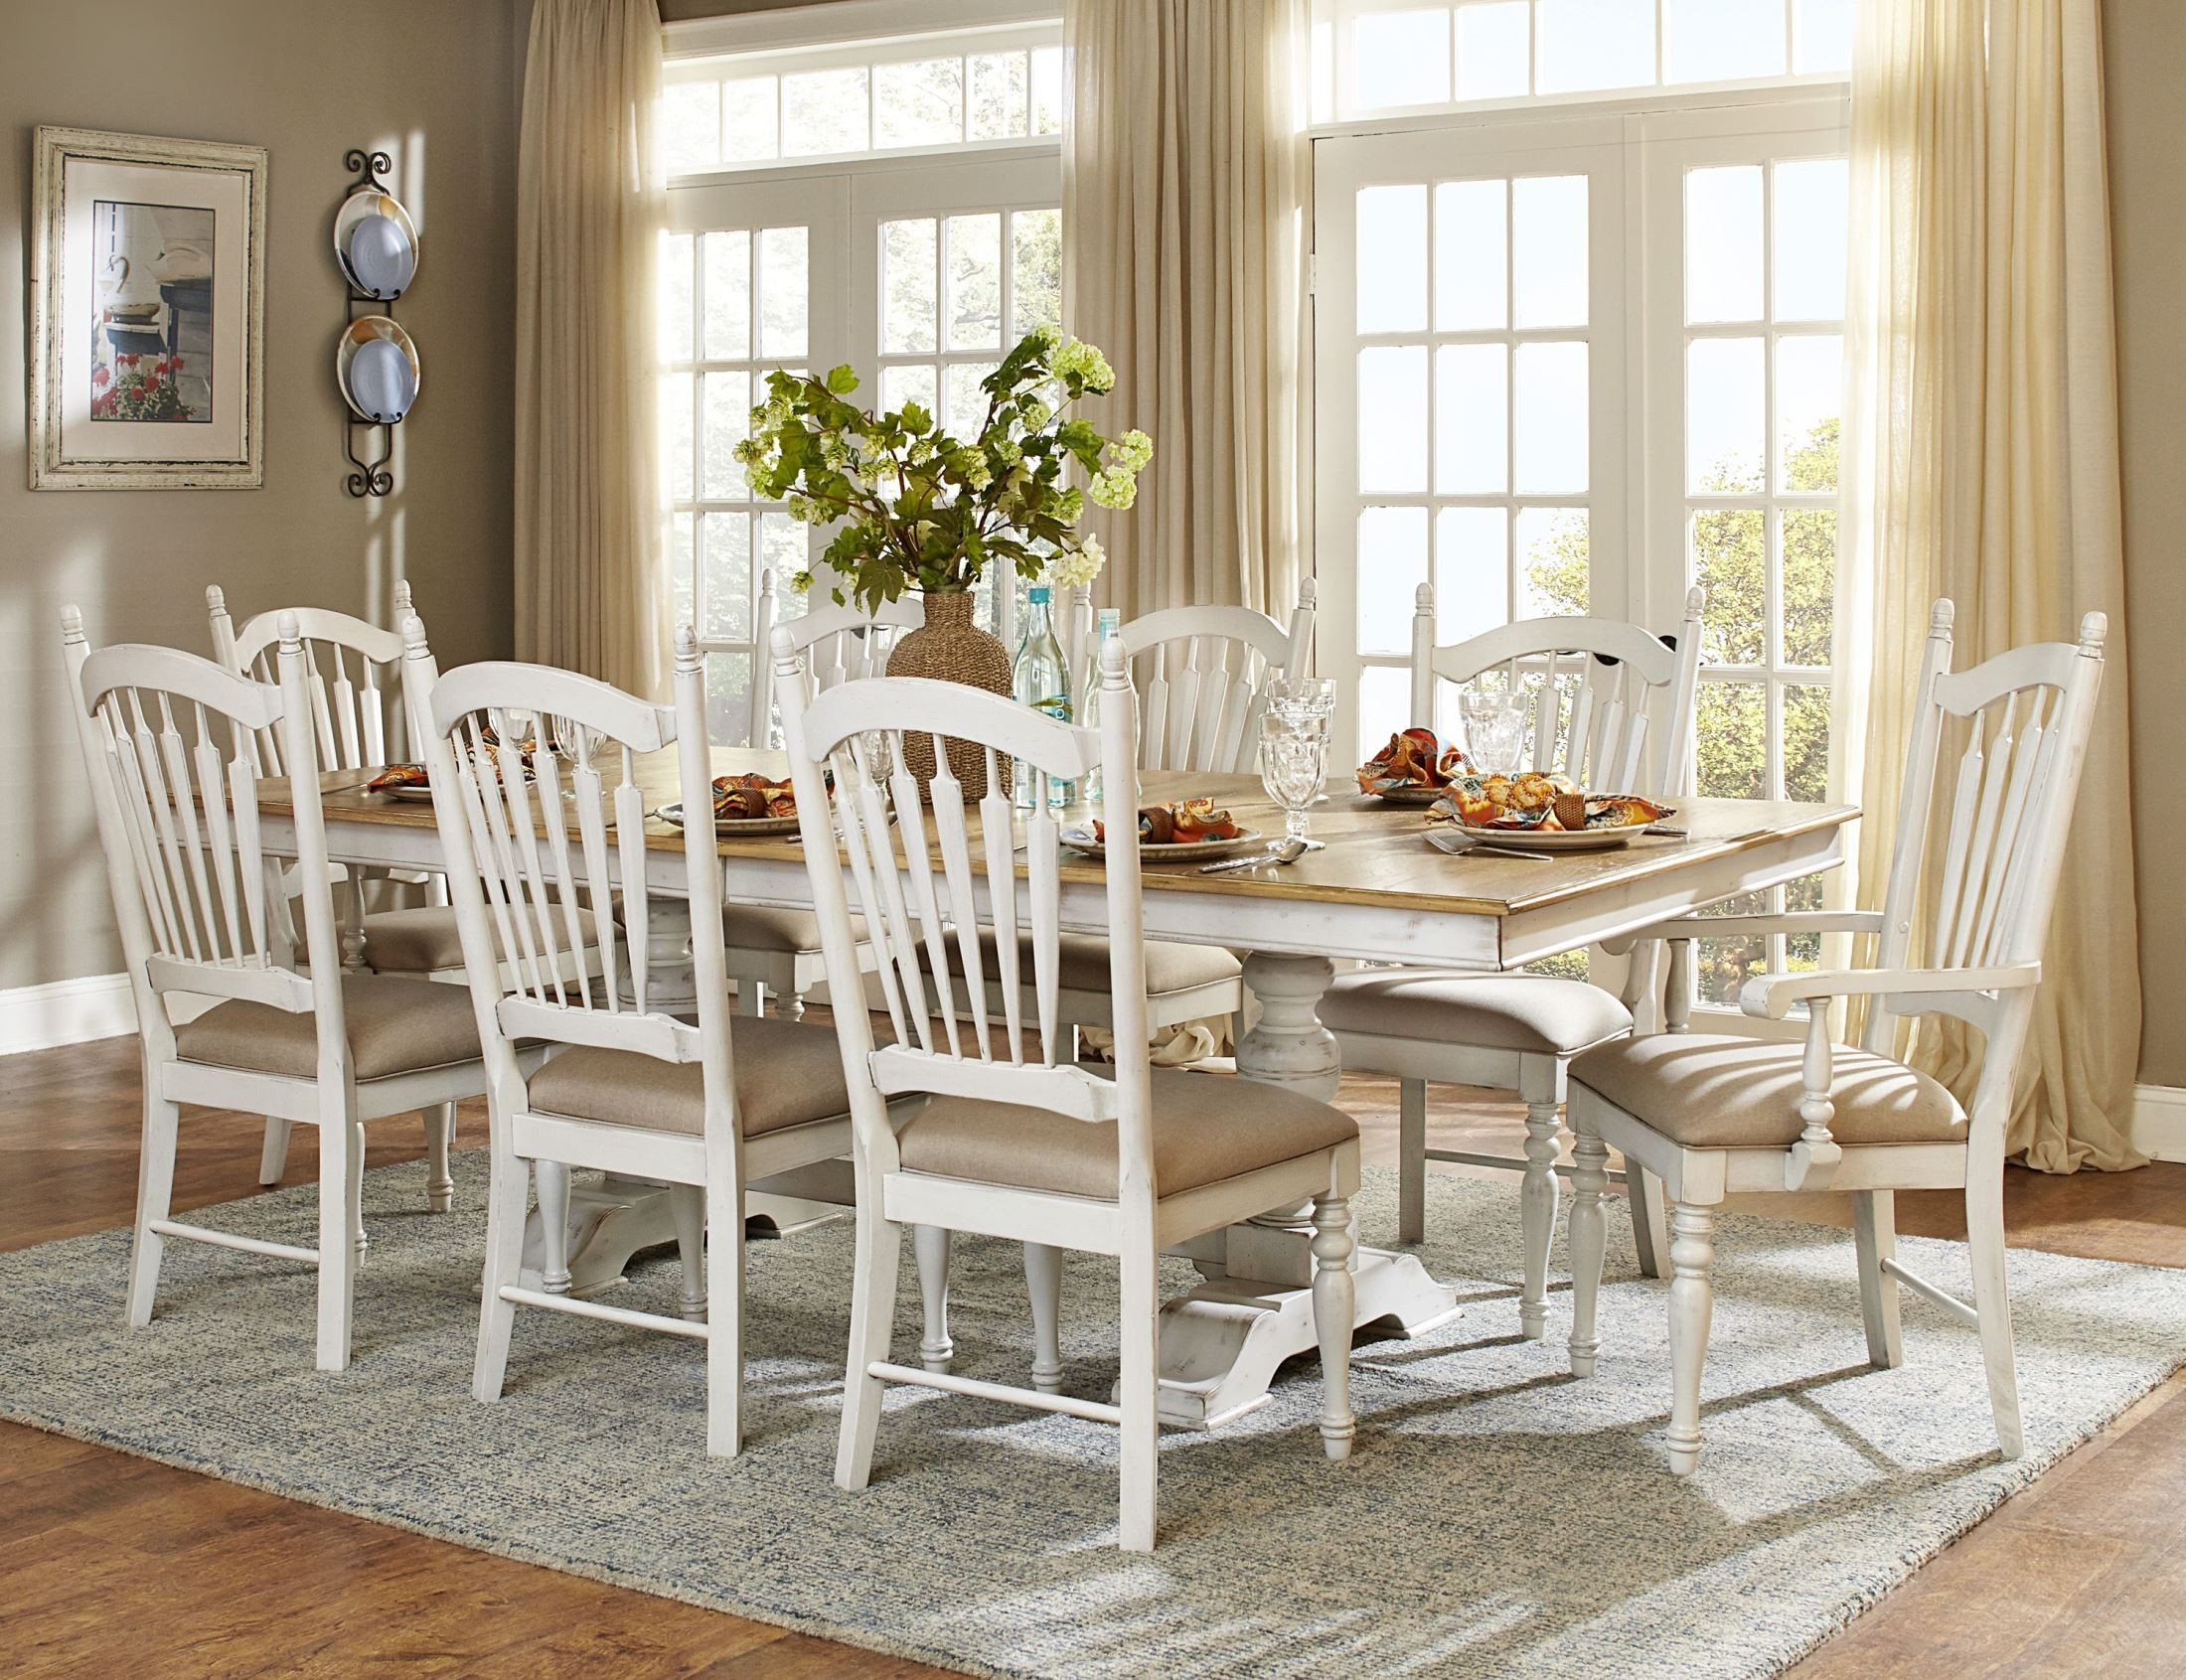 Homelegance Hollyhock 9pc Dining Table Set